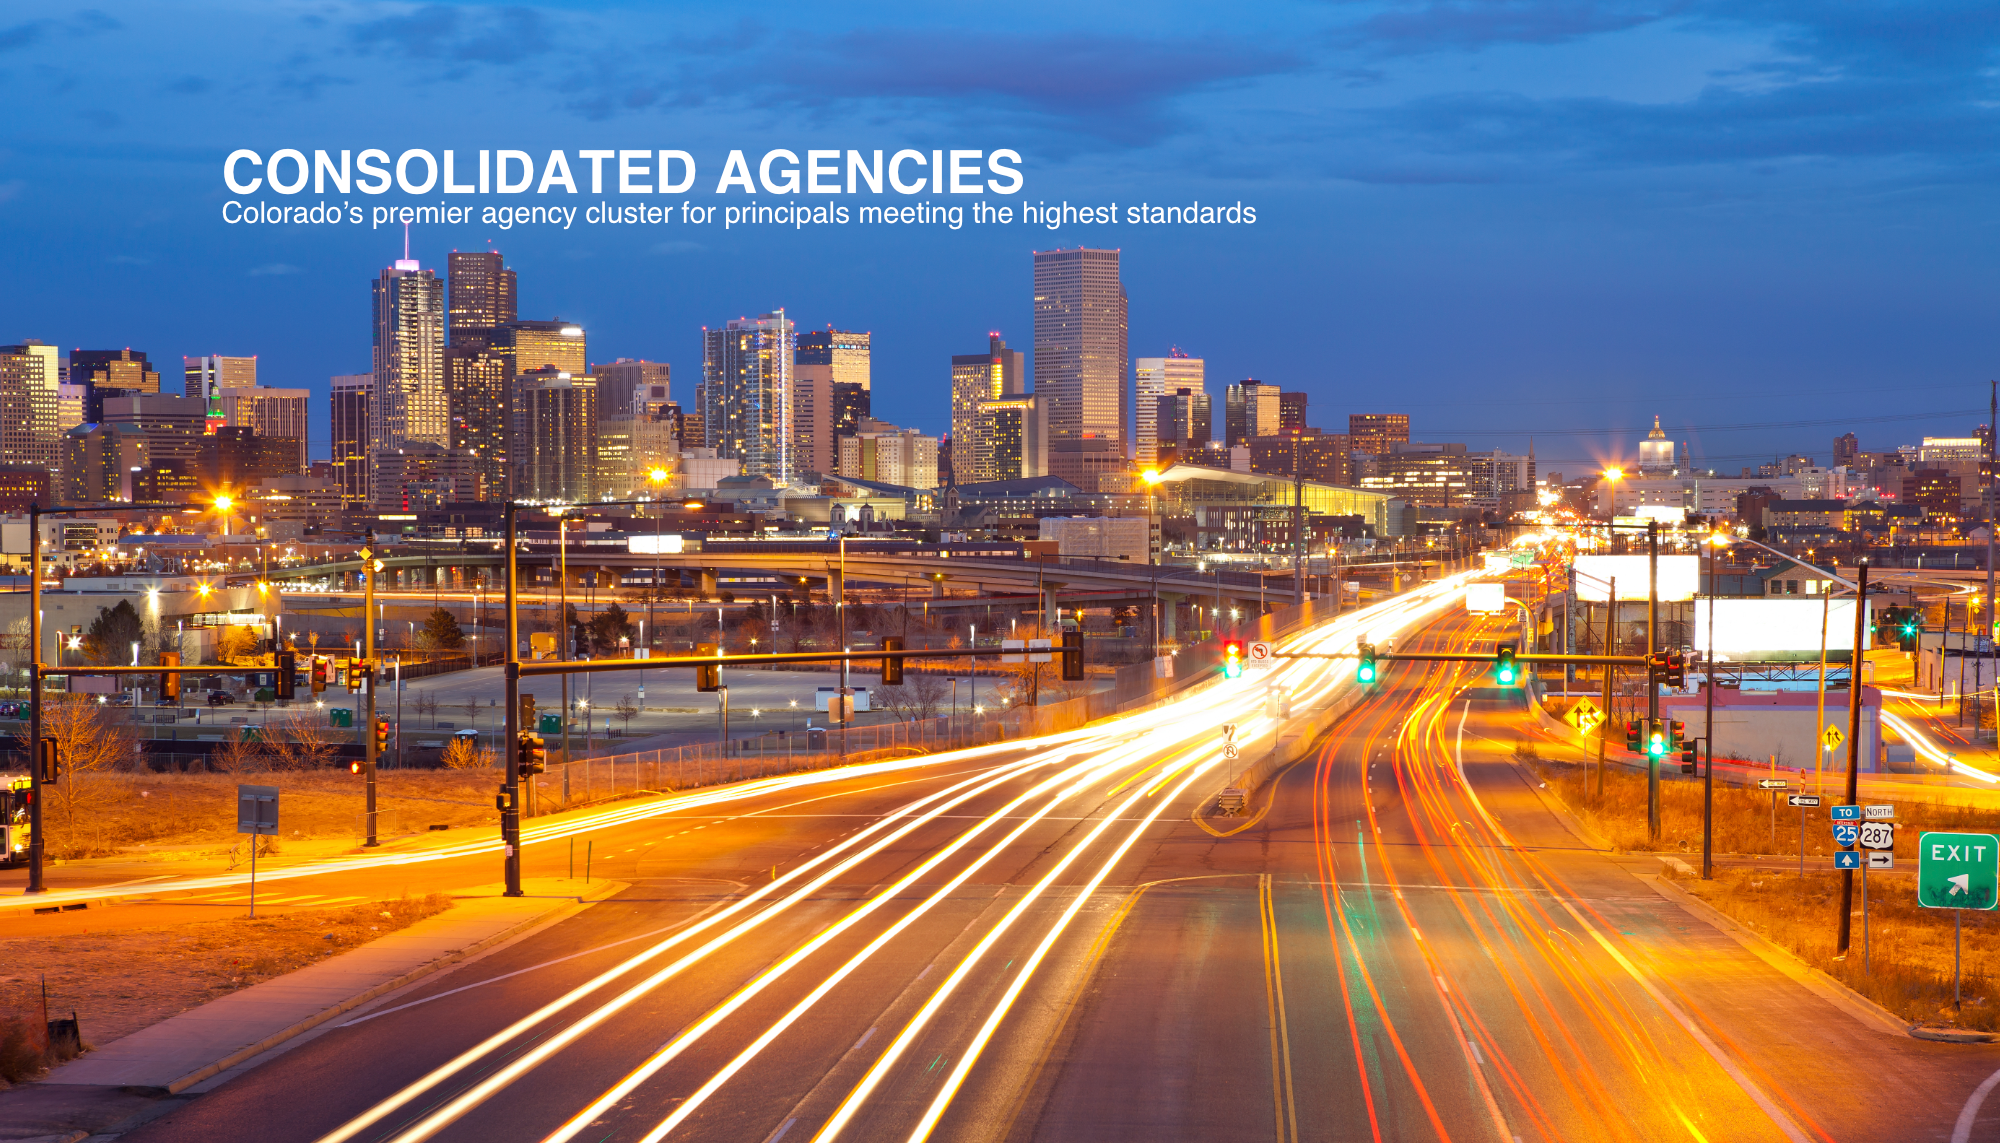 consolidated agencies